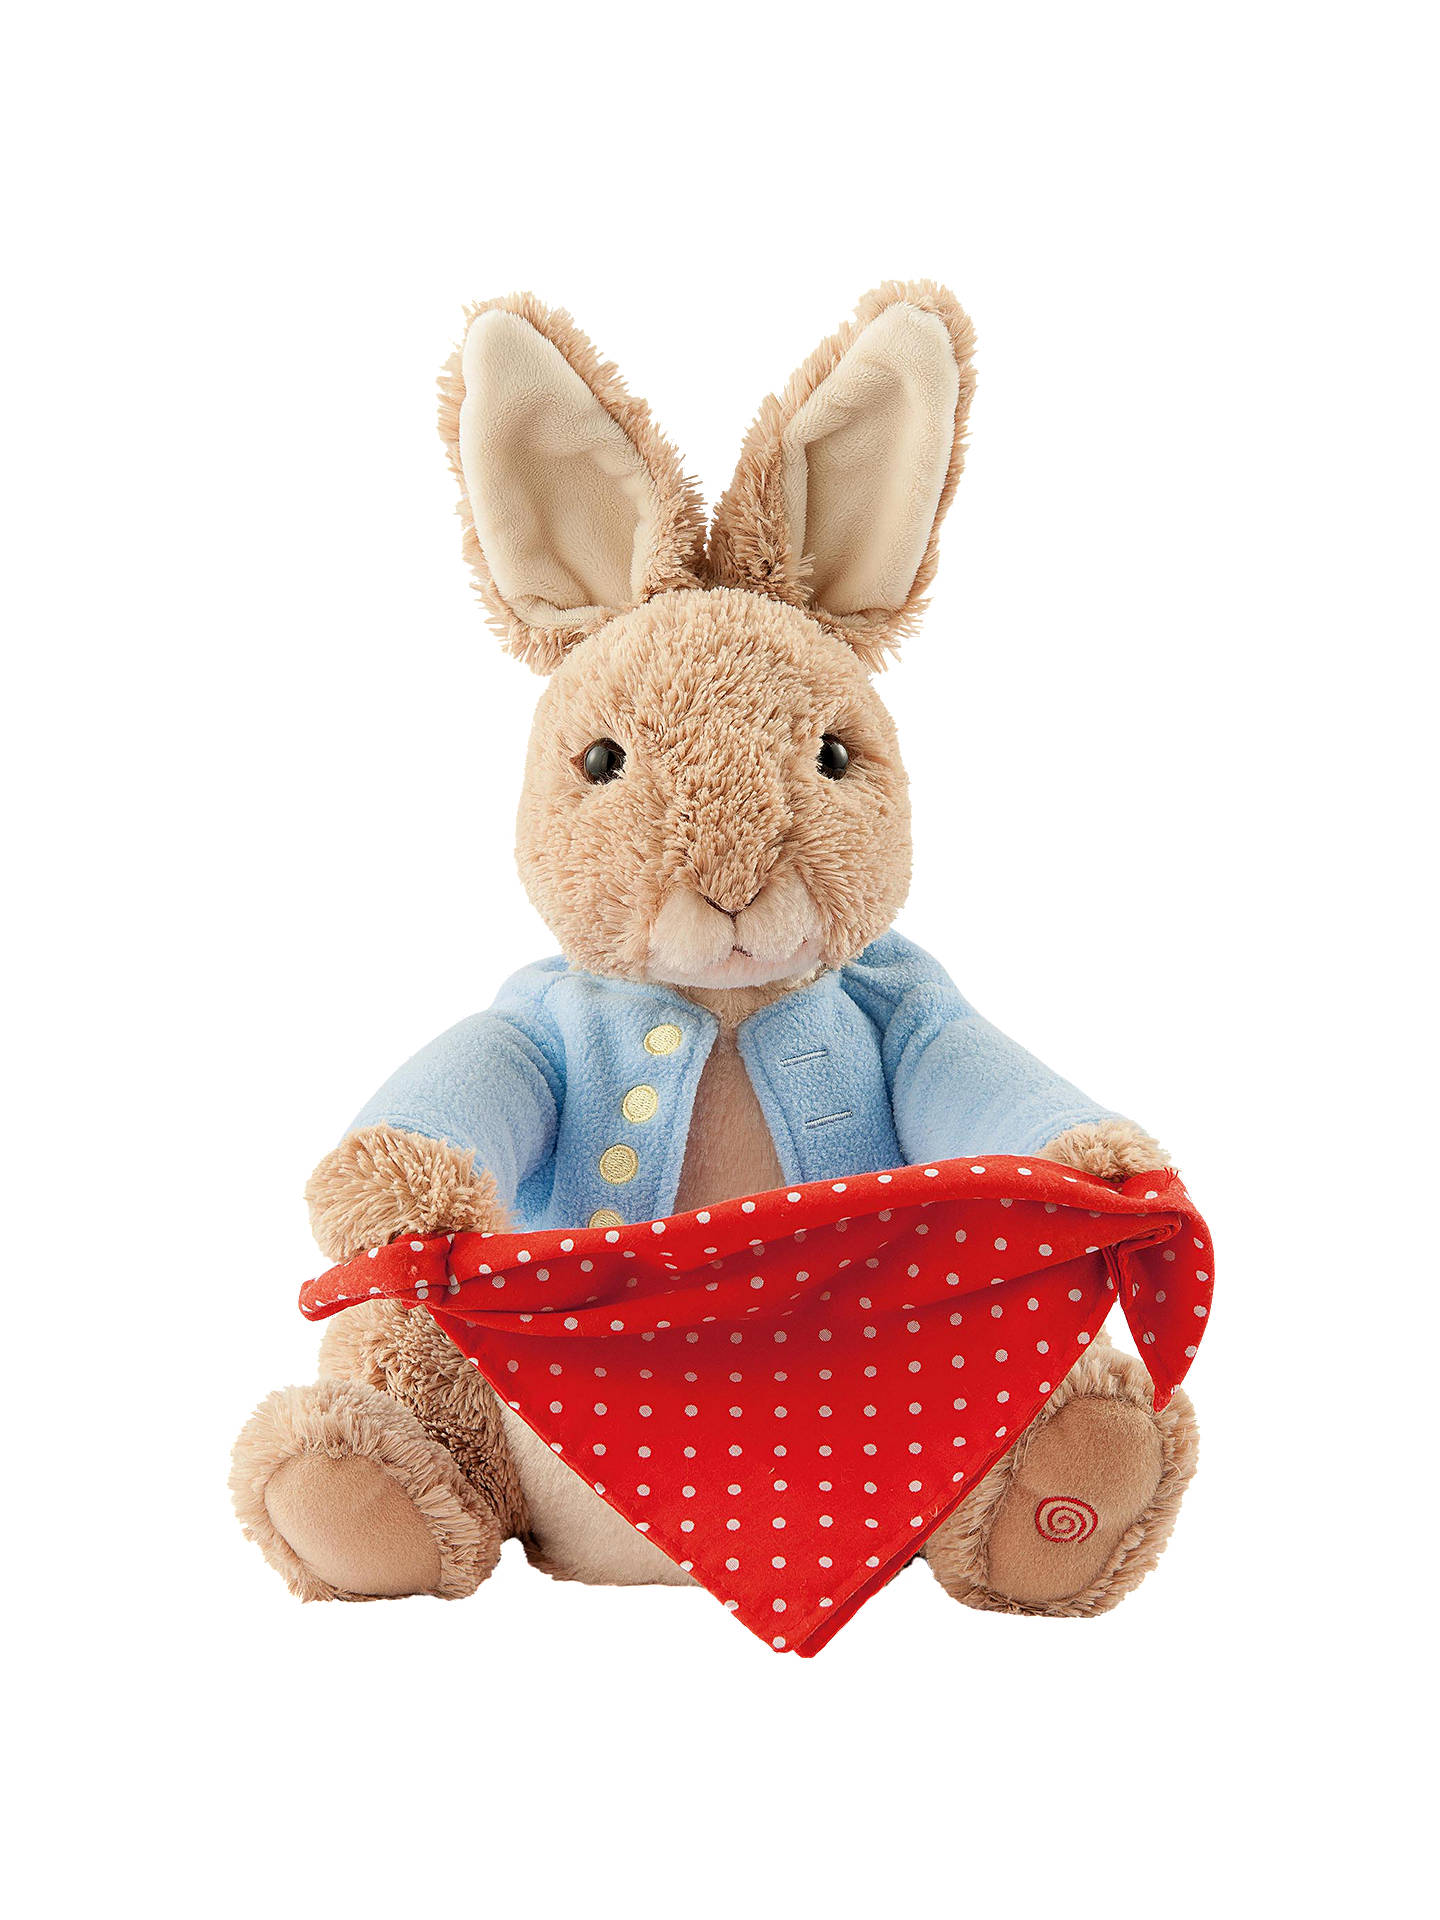 BuyBeatrix Potter Peter Rabbit Peek-A-Boo Game Soft Toy Online at johnlewis.com